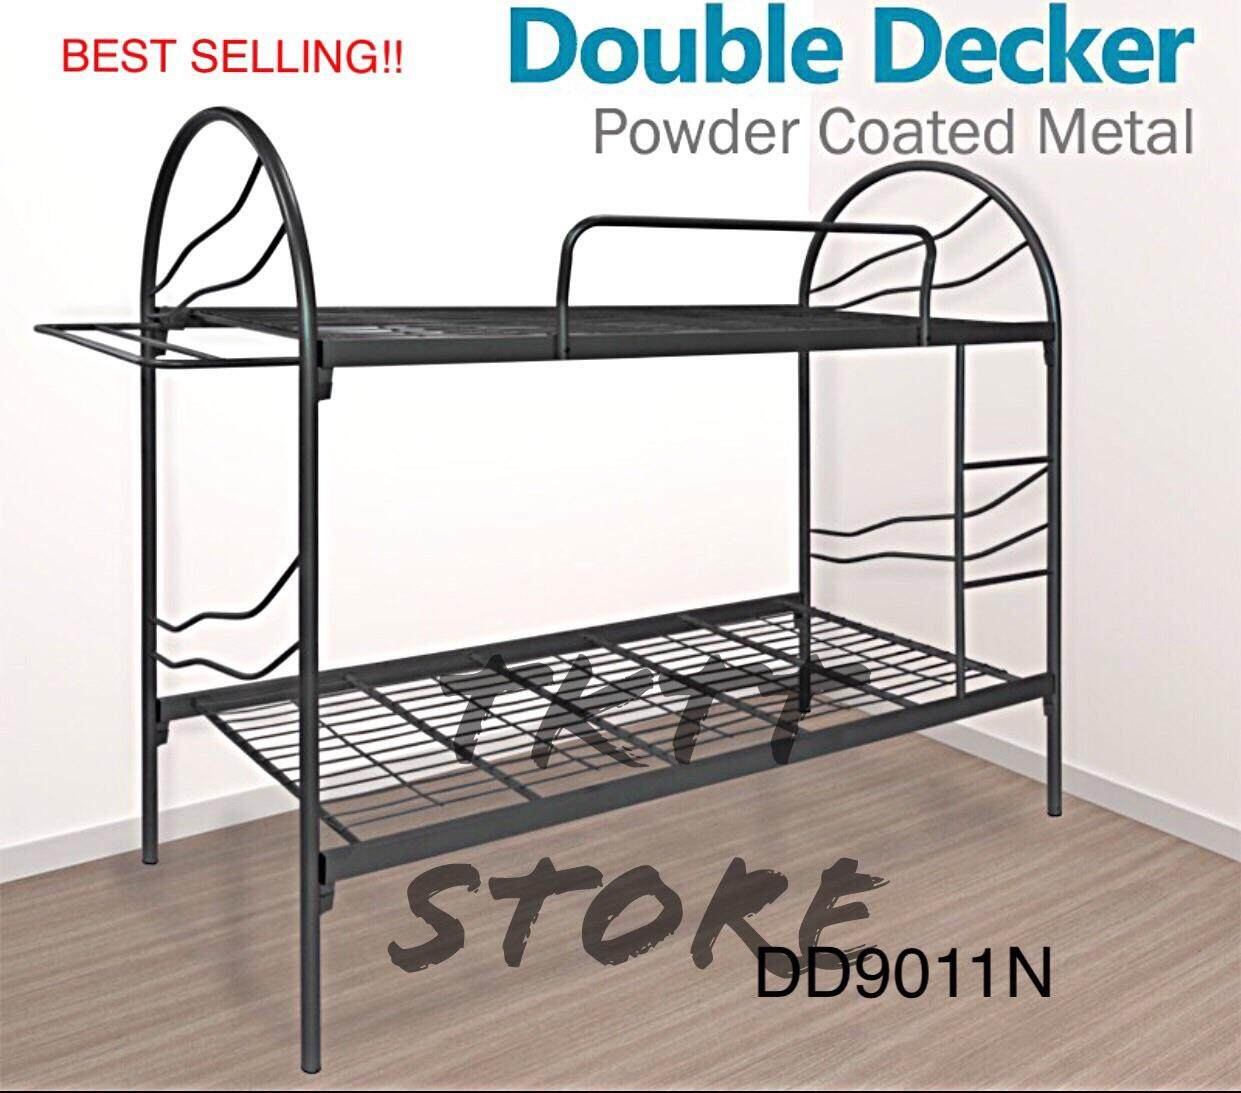 Tktt Dd9011n 3v Heavy Duty Full Metal Single Double Decker Bed/ Bunk Bed/ Hostel Divan/ 2 Tiers Bed Frame/ Katil 2 Tingkat Bermutu Tinggi/ Katil Besi/ Katil Hostel/ Katil Besi Kuat/ Katil Bujang (random Colour) By Tktt Store.